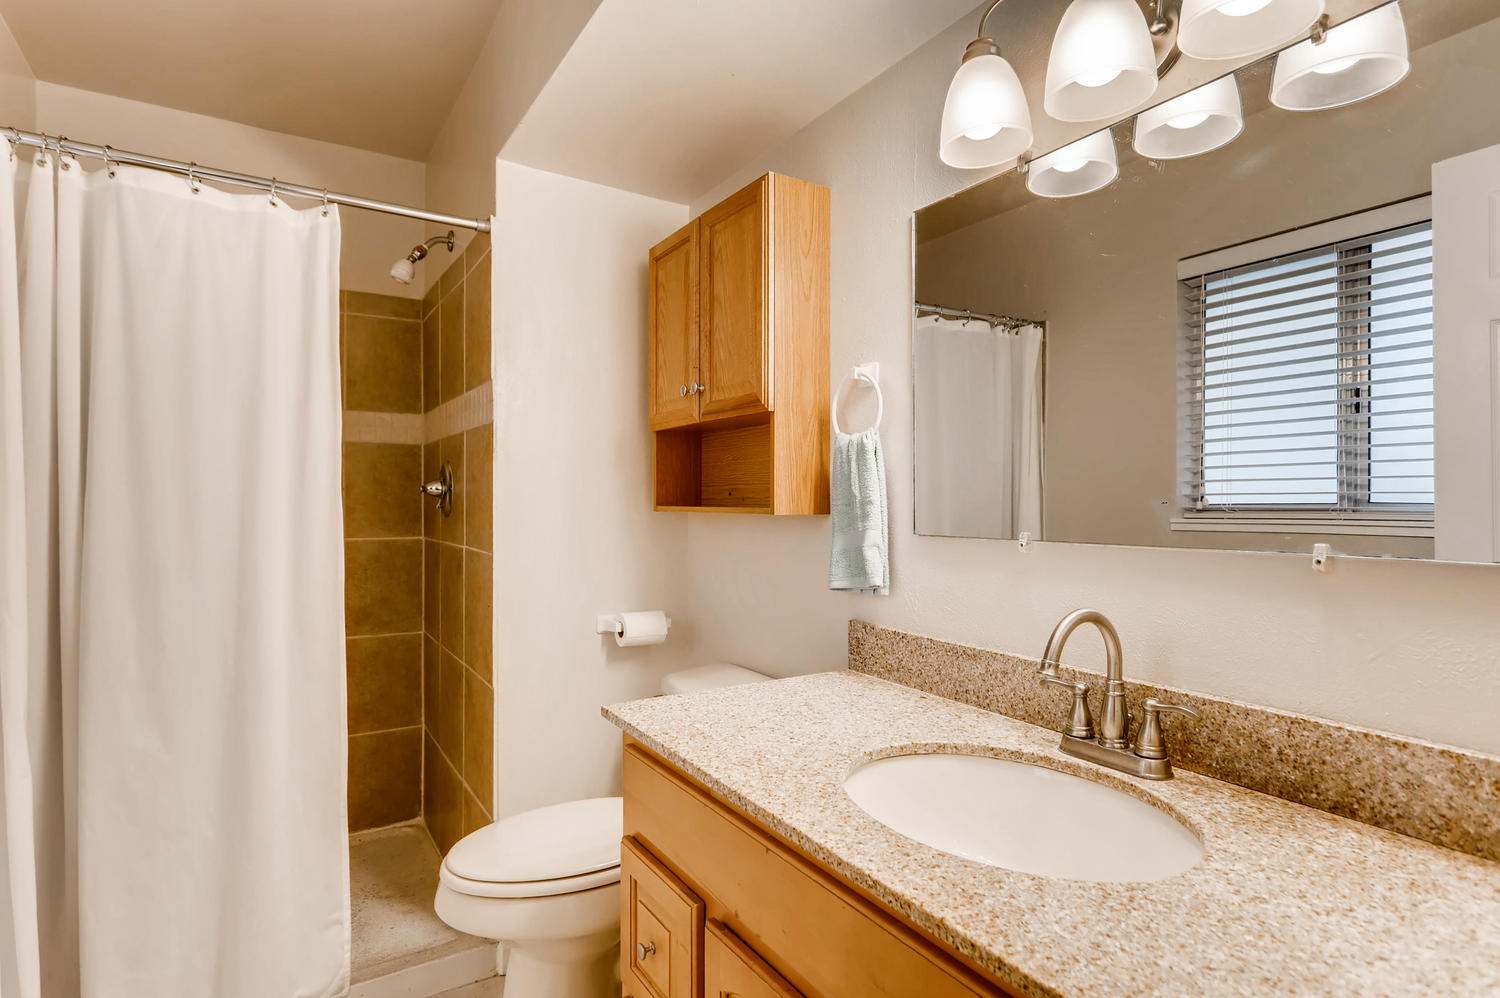 16971 E Bates Ave Aurora CO-large-014-26-2nd Floor Master Bathroom-1500x998-72dpi.jpg